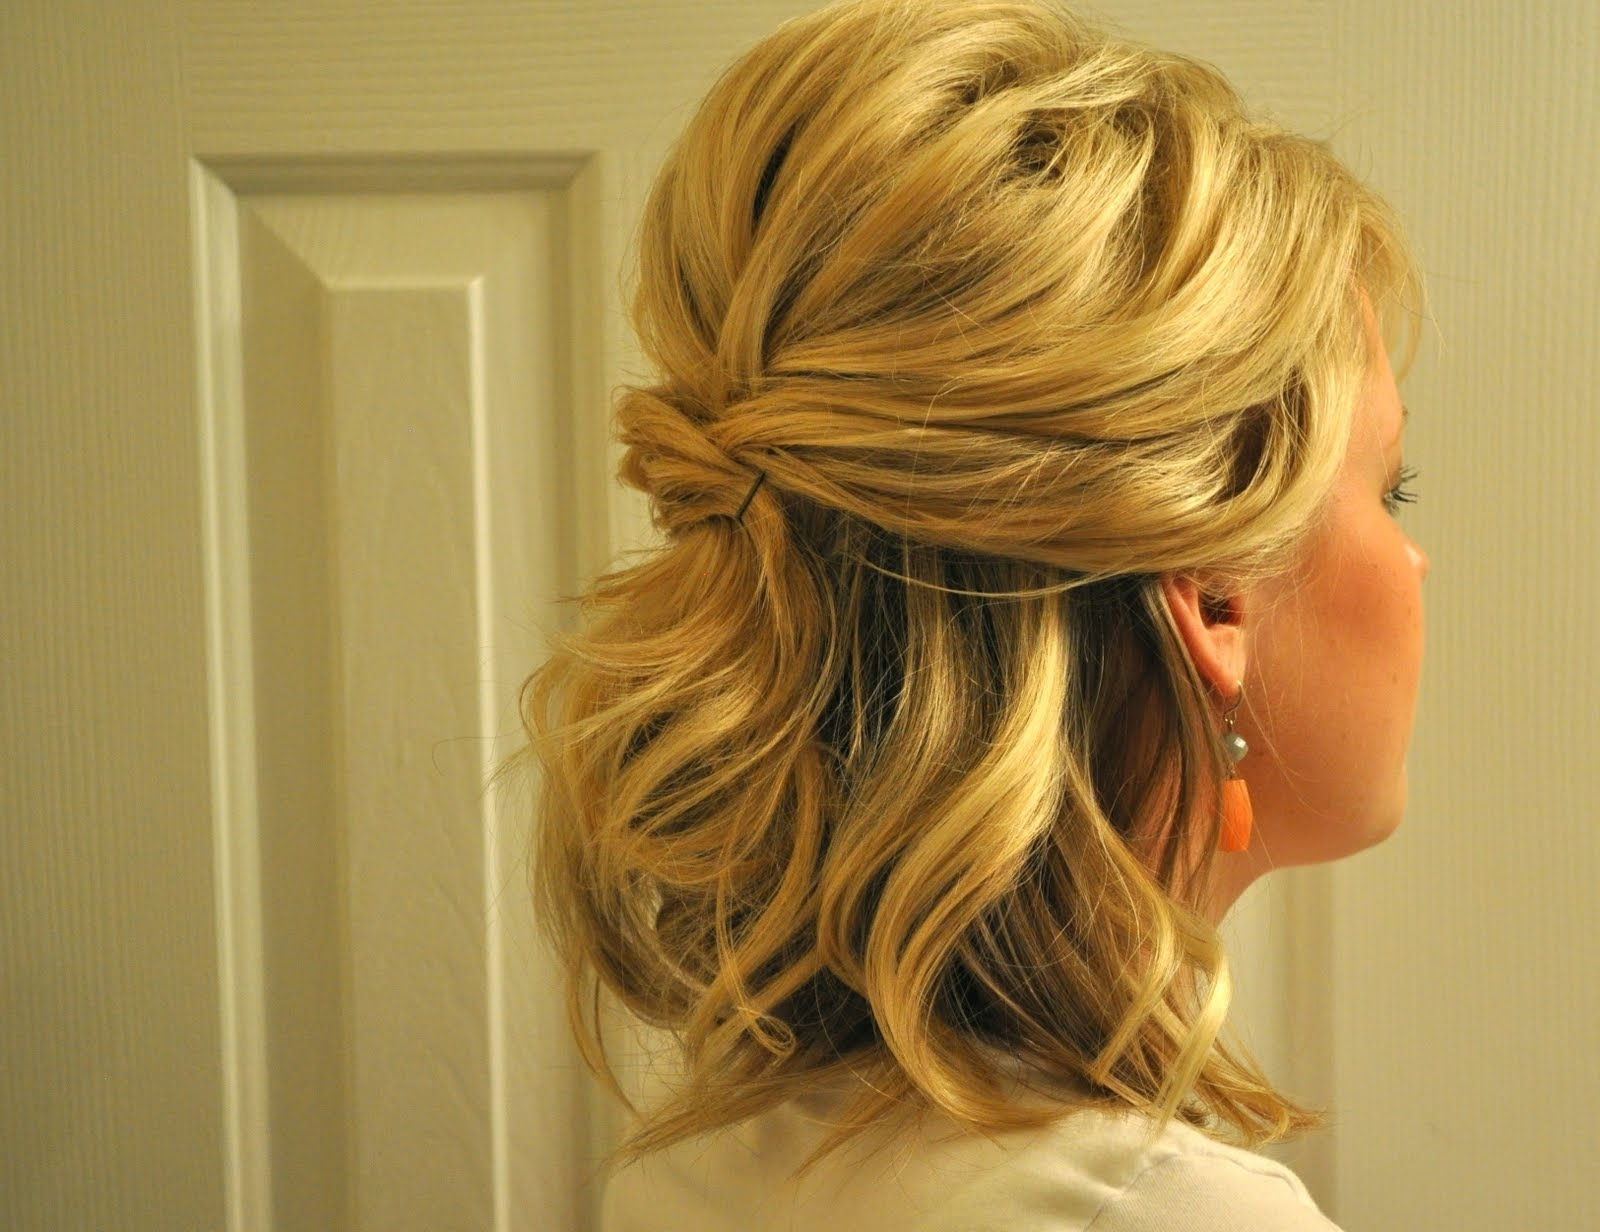 Short Half Up Hairstyles – Hairstyle For Women & Man Within Favorite Wedding Hairstyles For Short Hair With Extensions (View 11 of 15)